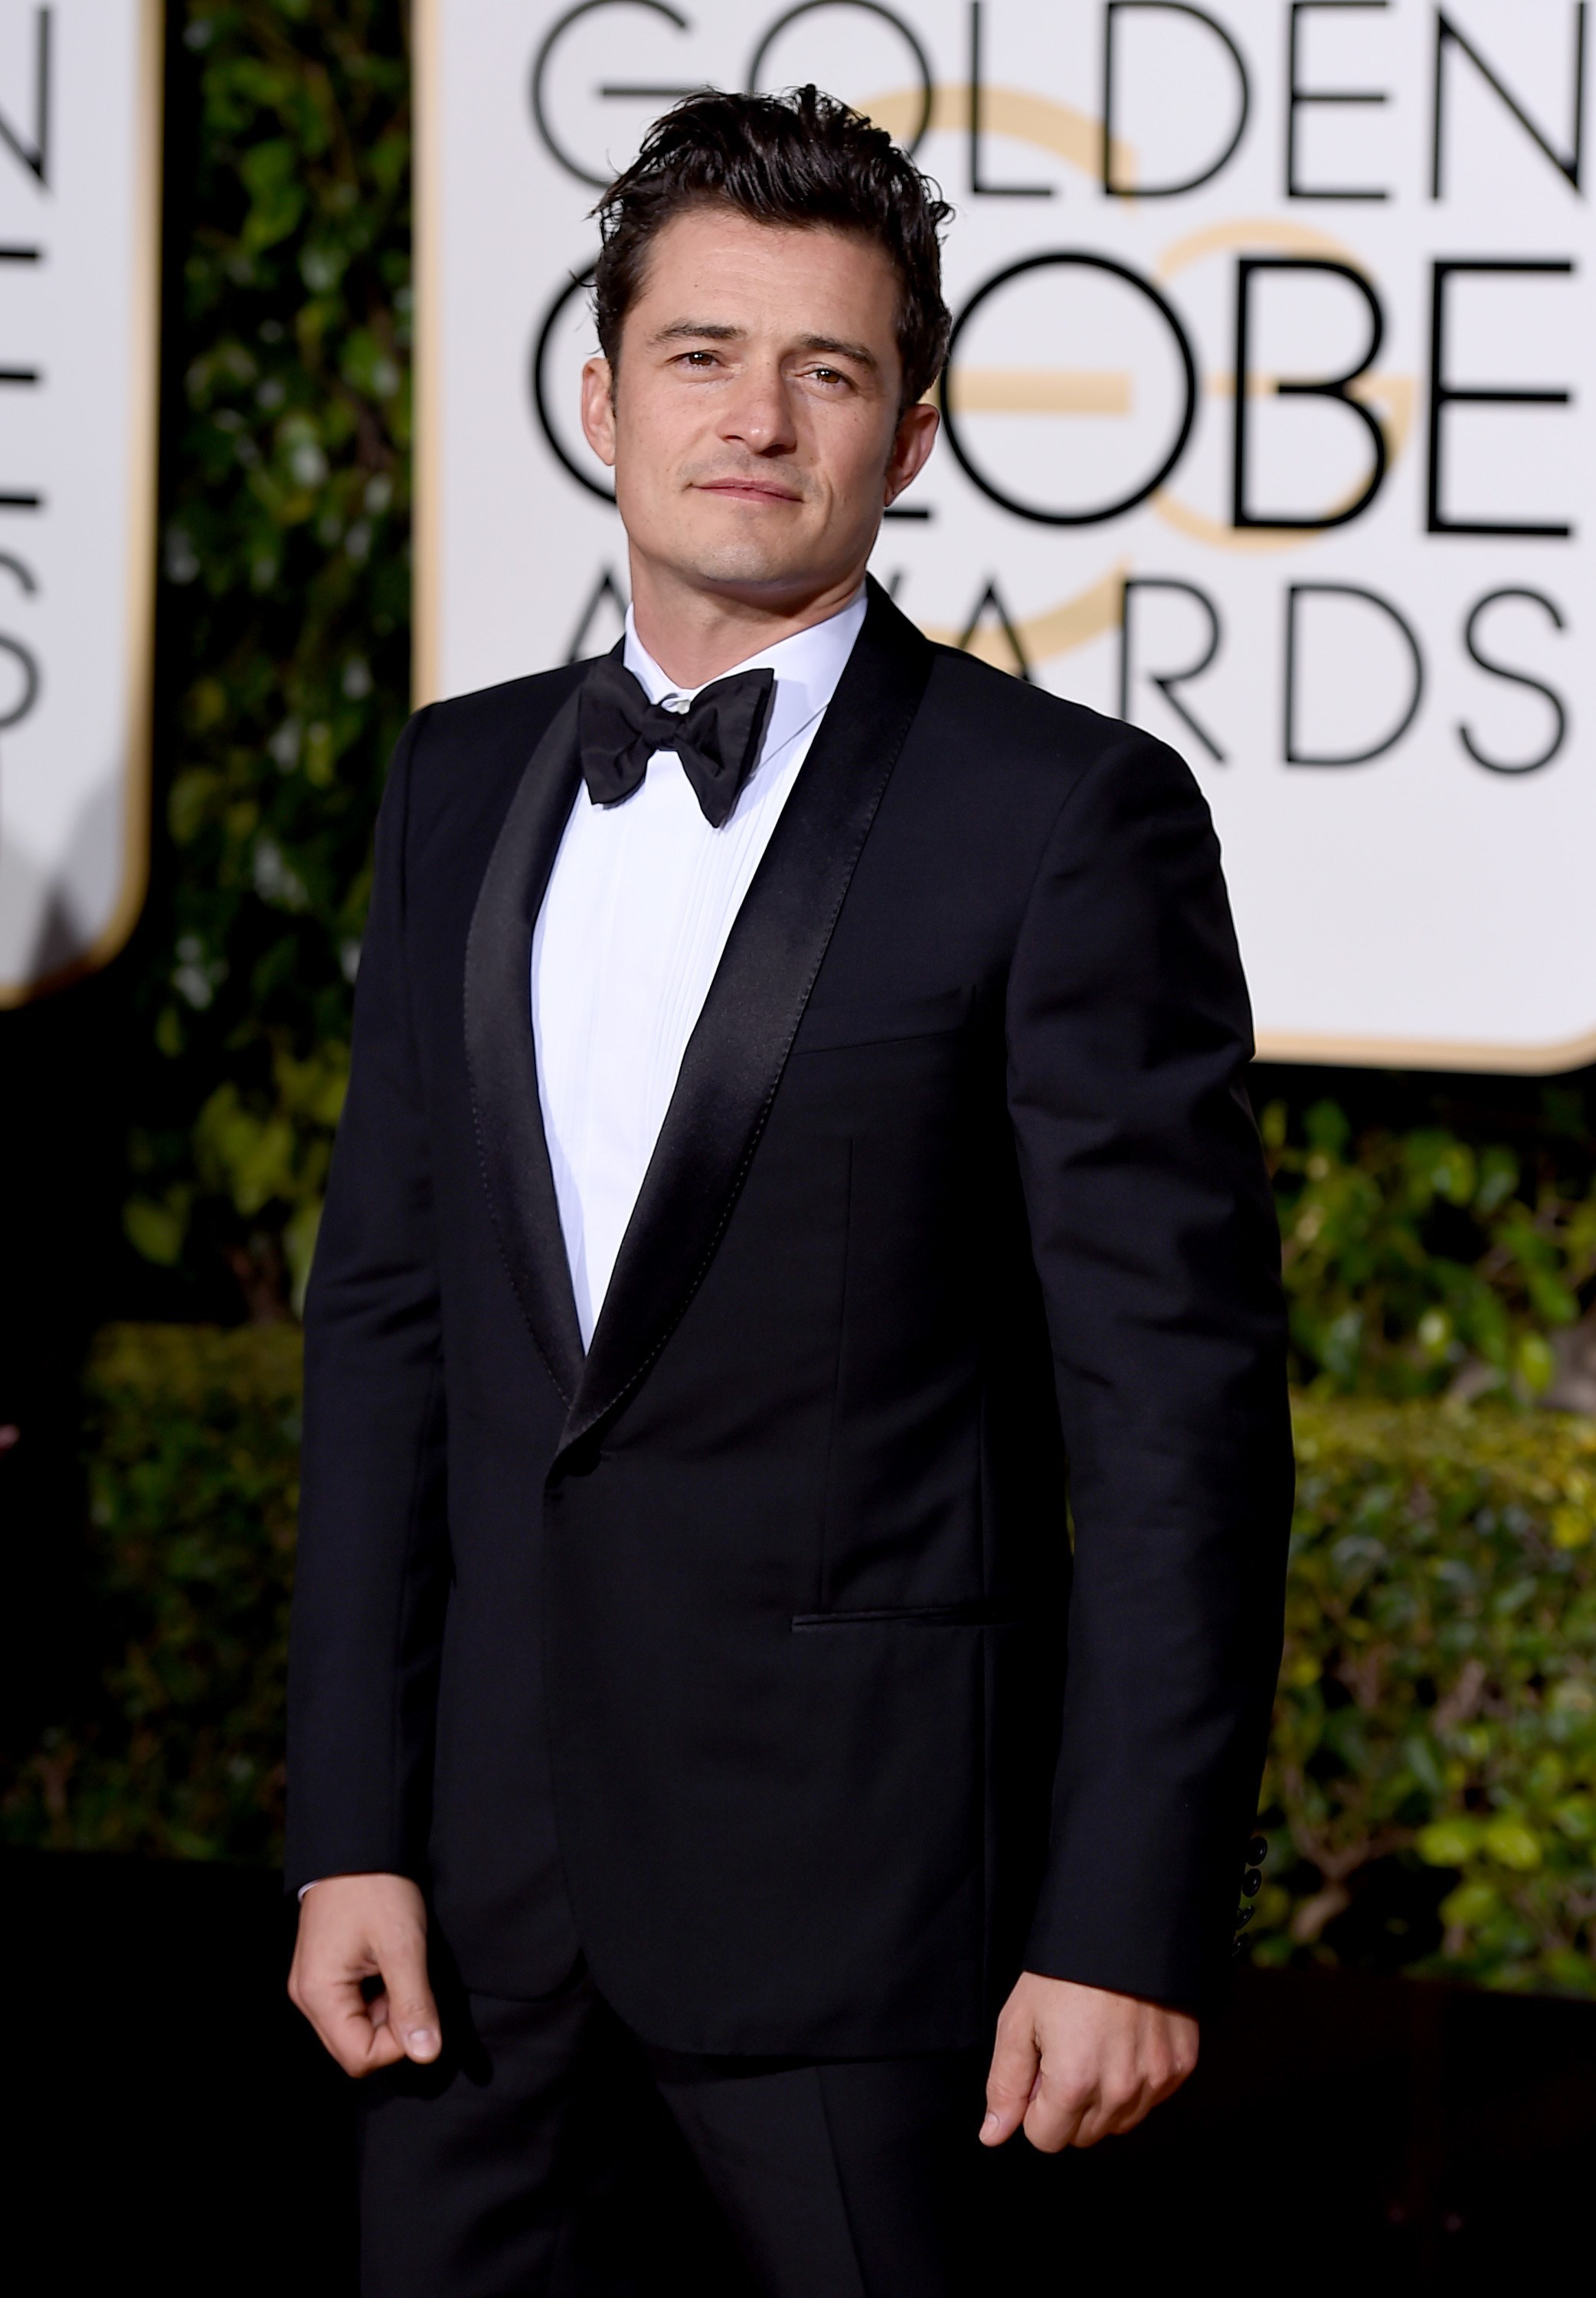 Orlando Bloom continues his awards show flirtations